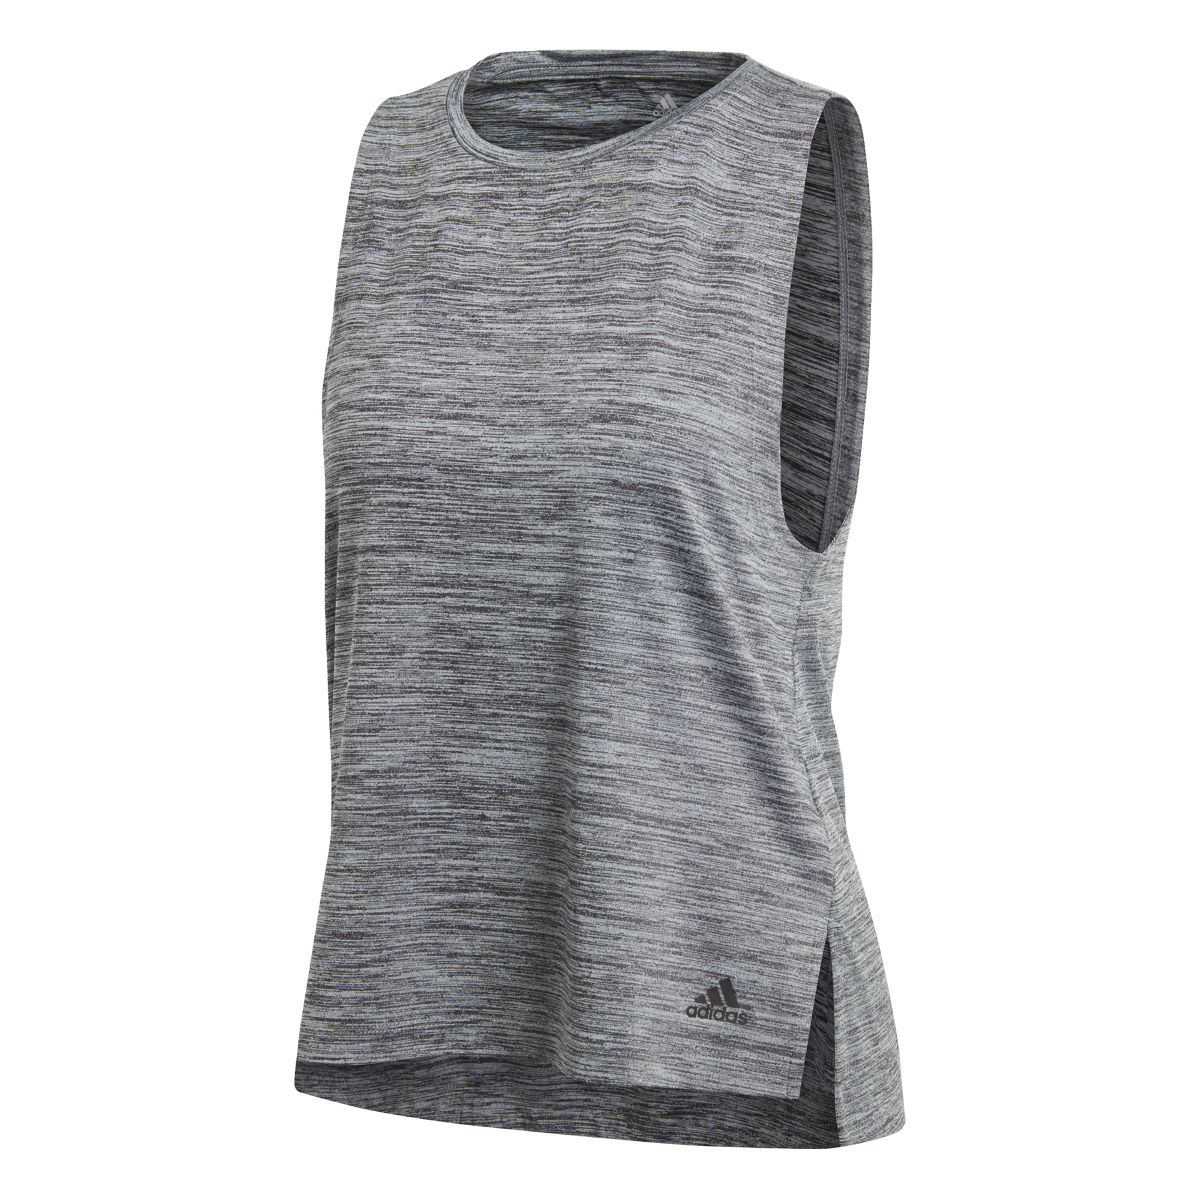 Débardeur Femme Adidas Boxy Light - Extra Small ASH GREY S18